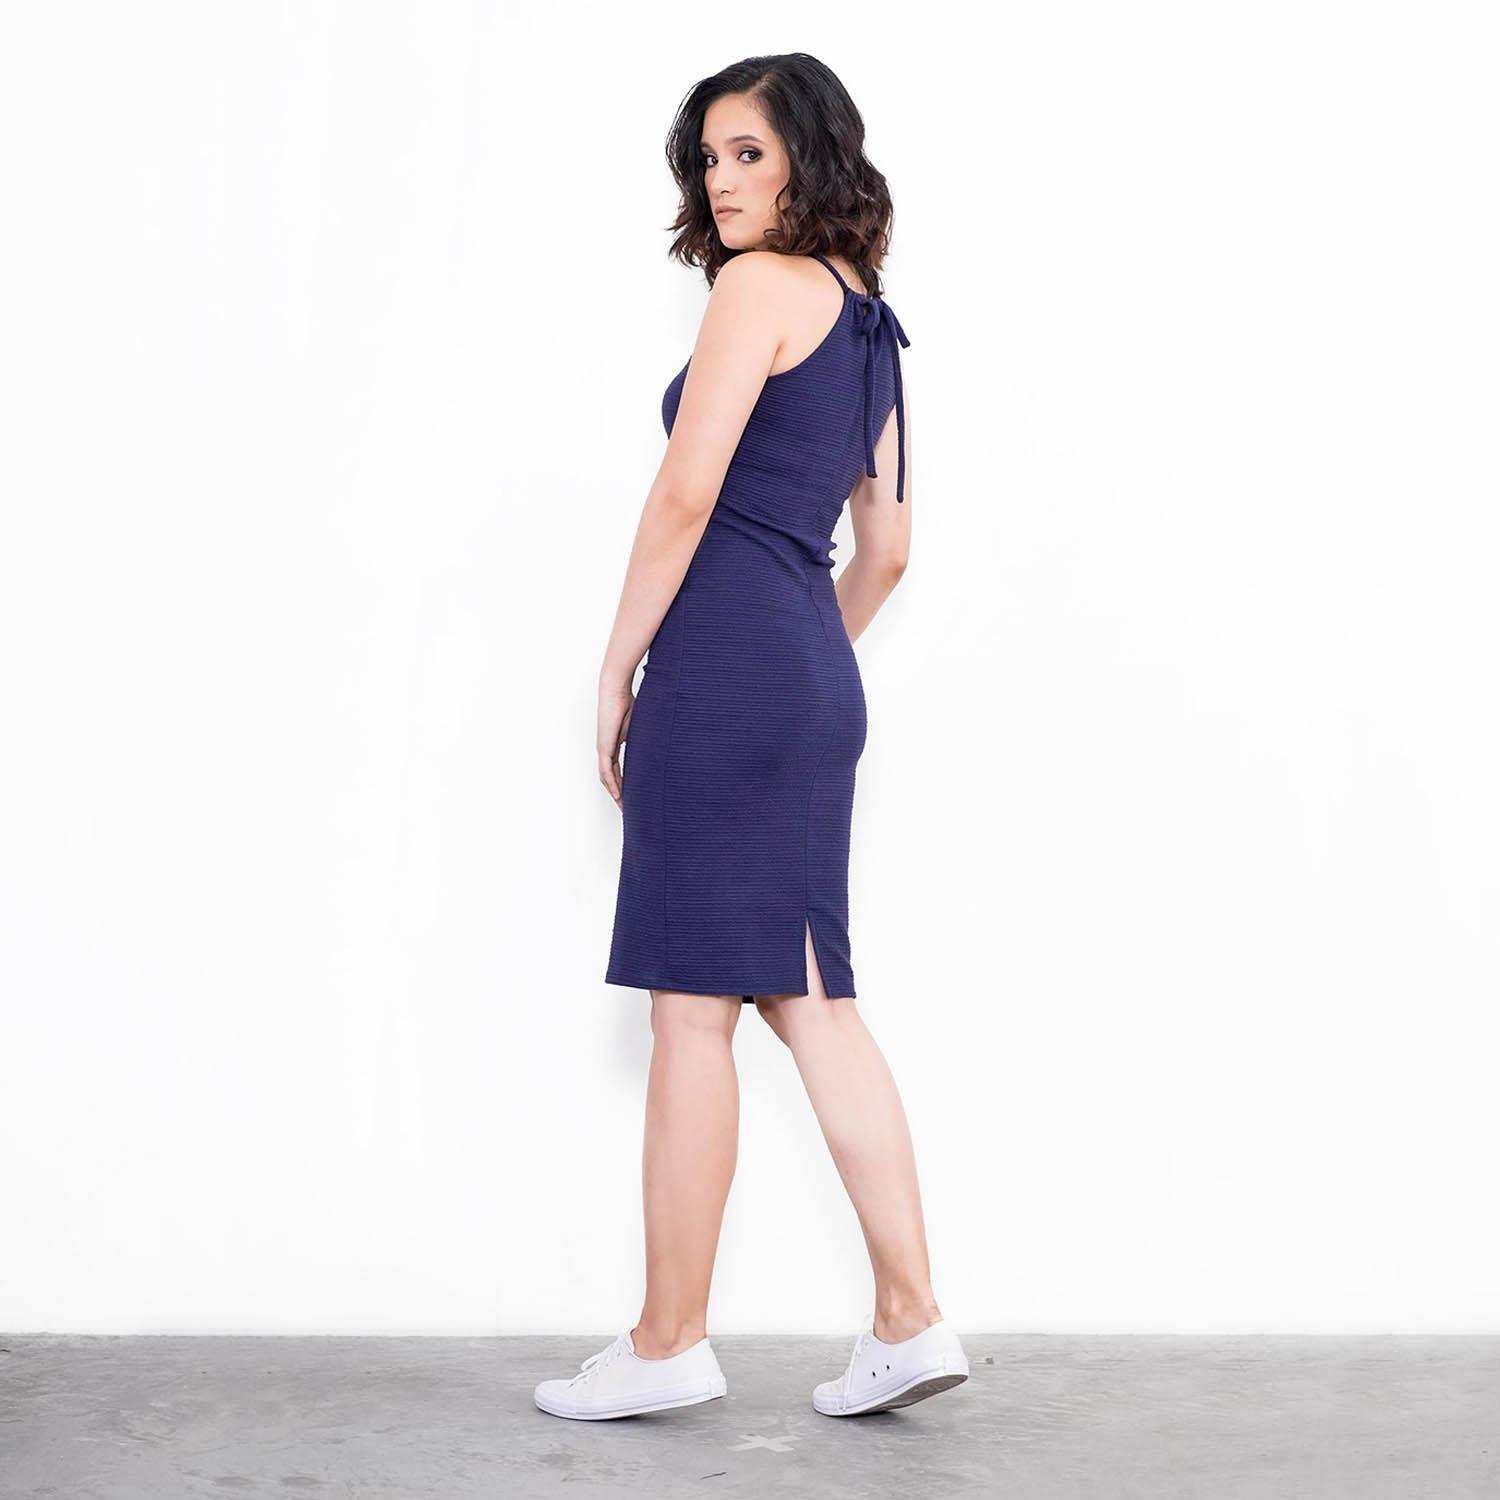 BLACK SHEEP Fitted Halter Dress in Textured Knit in Blue